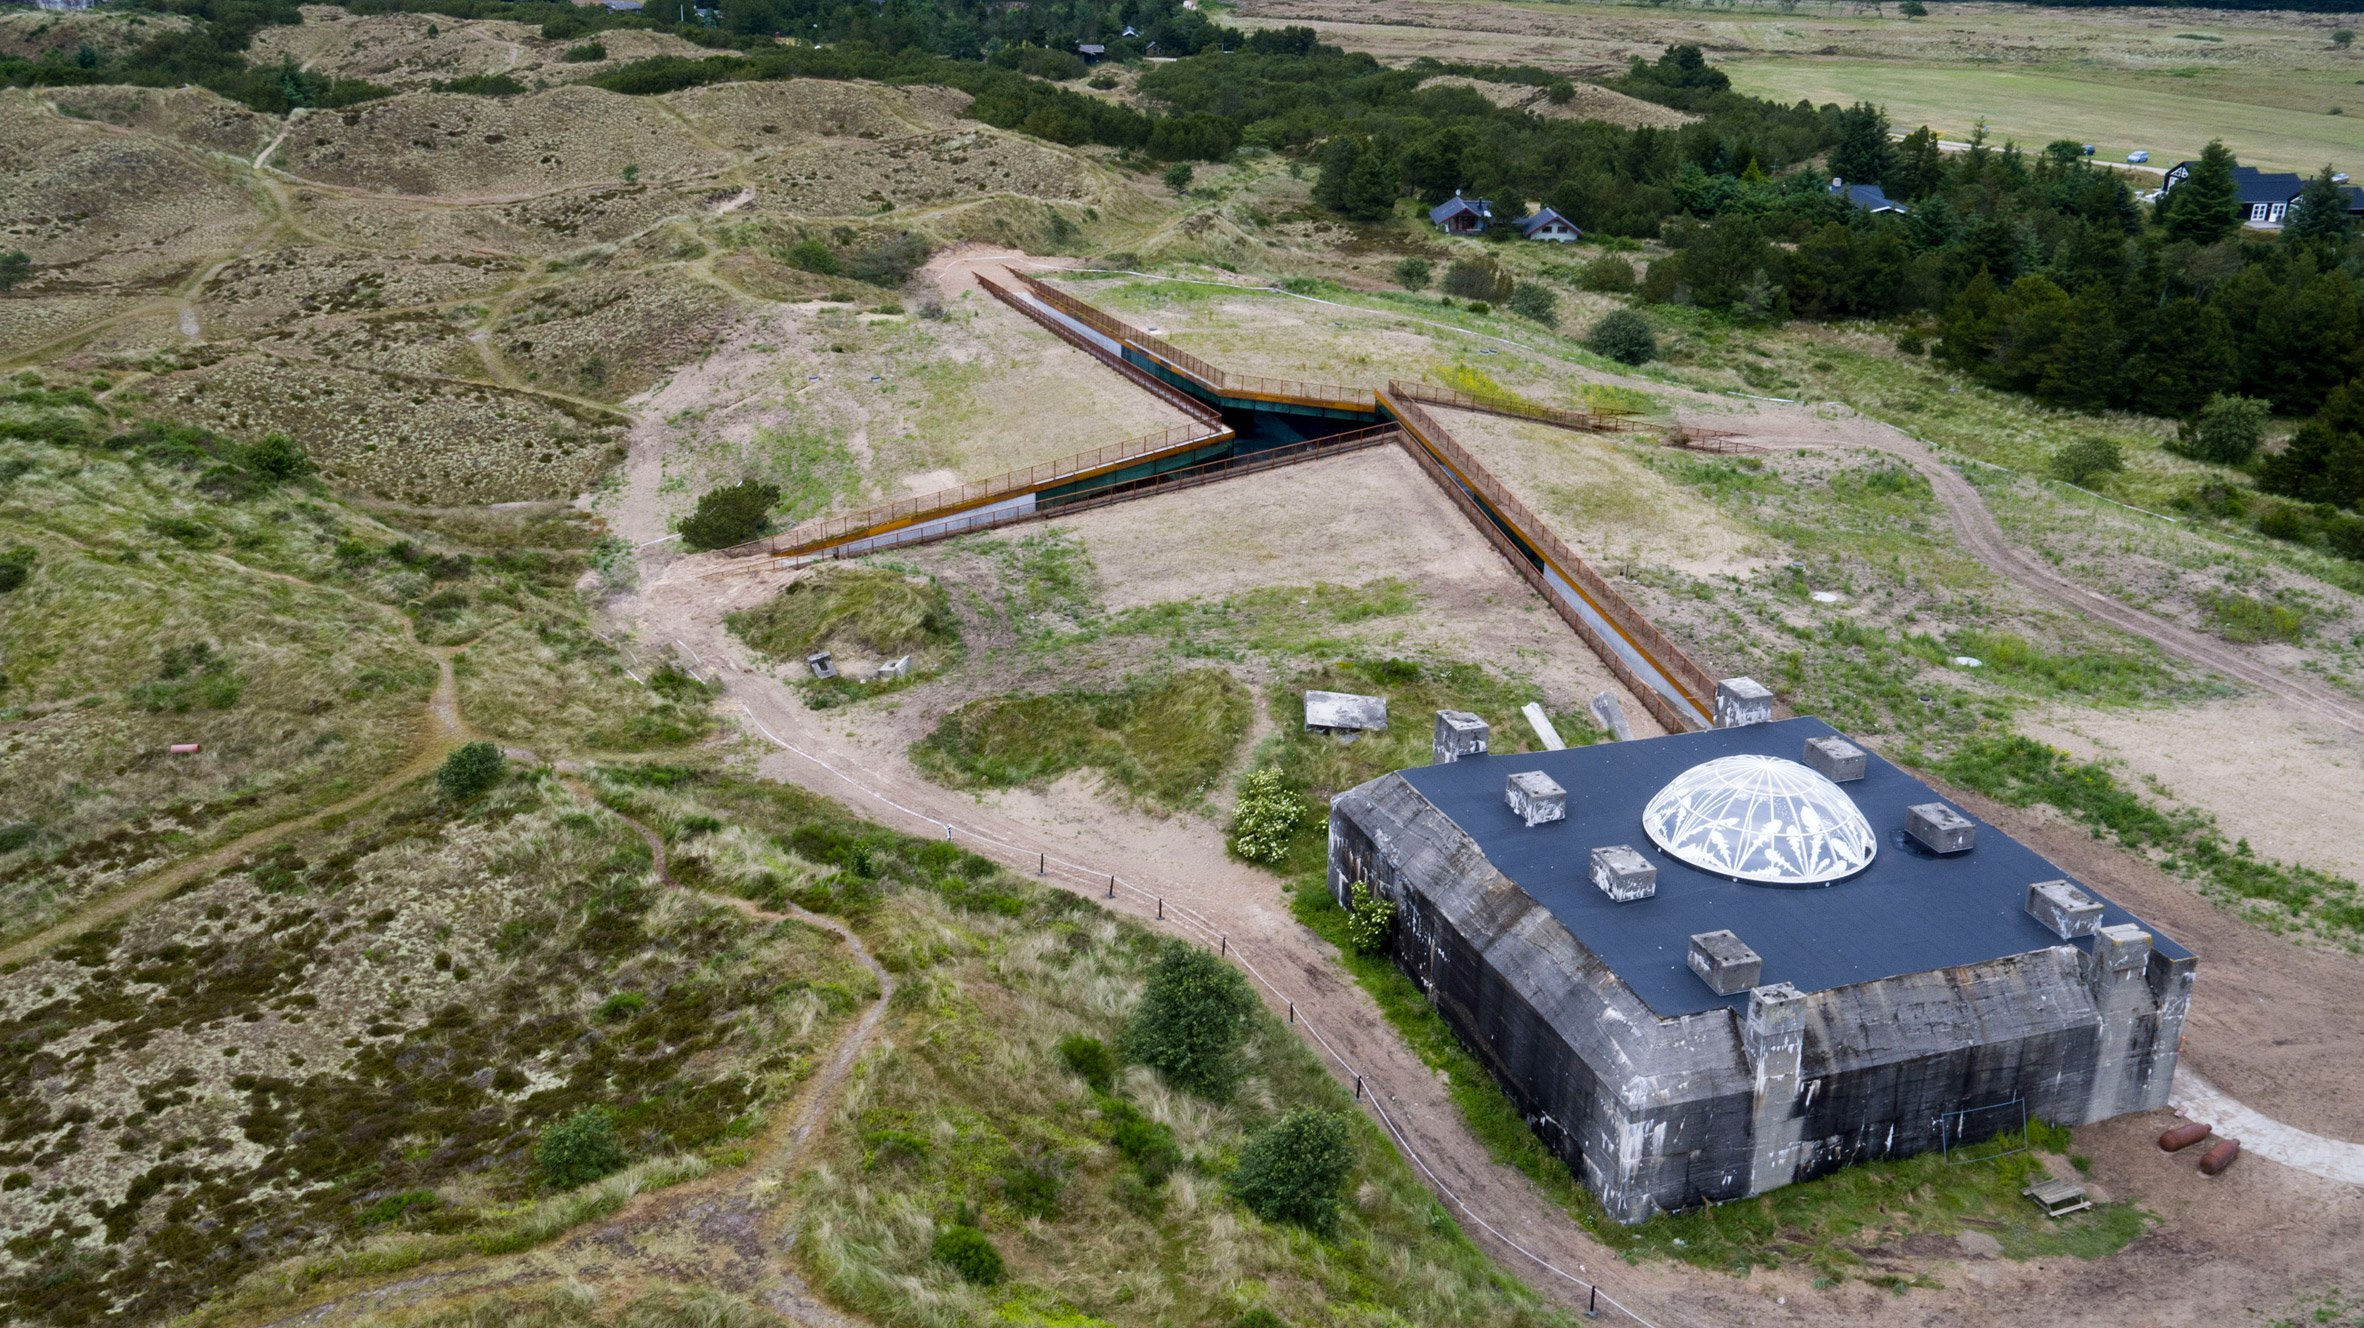 BIG creates subterranean museum by carving channels into dune by Nazi bunker